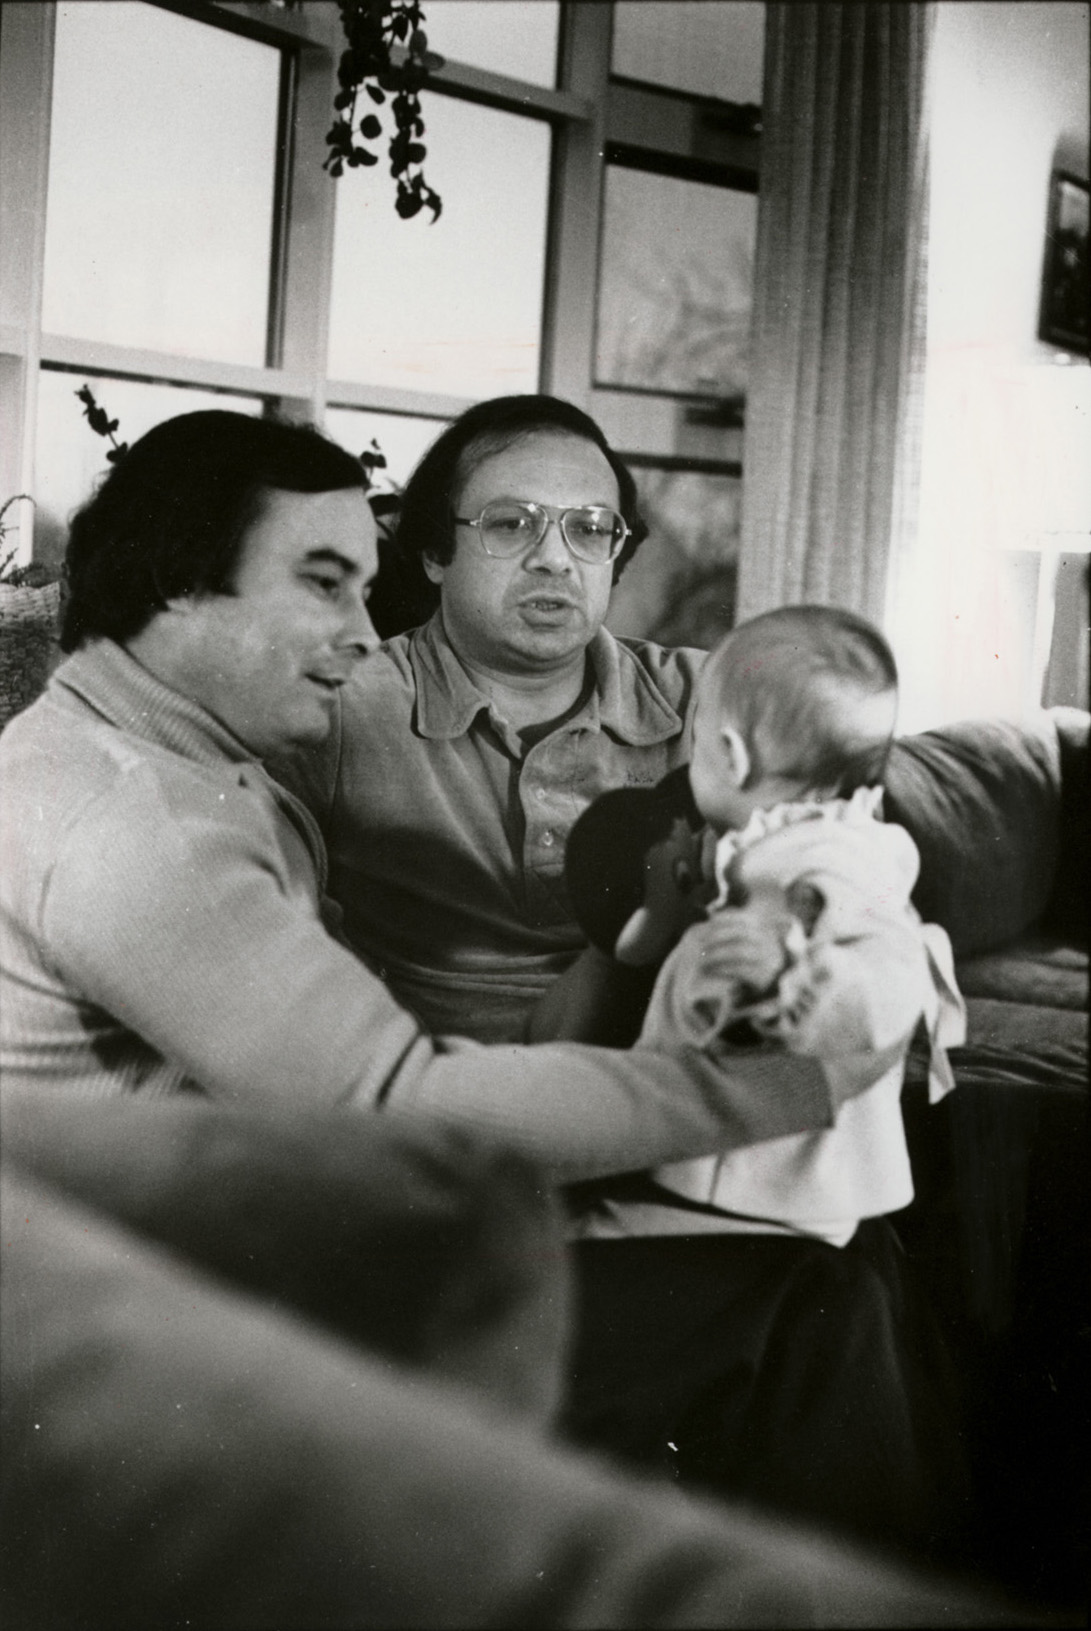 Gerard Ouimette holds his daughter Nicole while lawyer Jack Cicilline, the girl's godfather, looks on. Special to The Providence Journal/Tracy Breton.